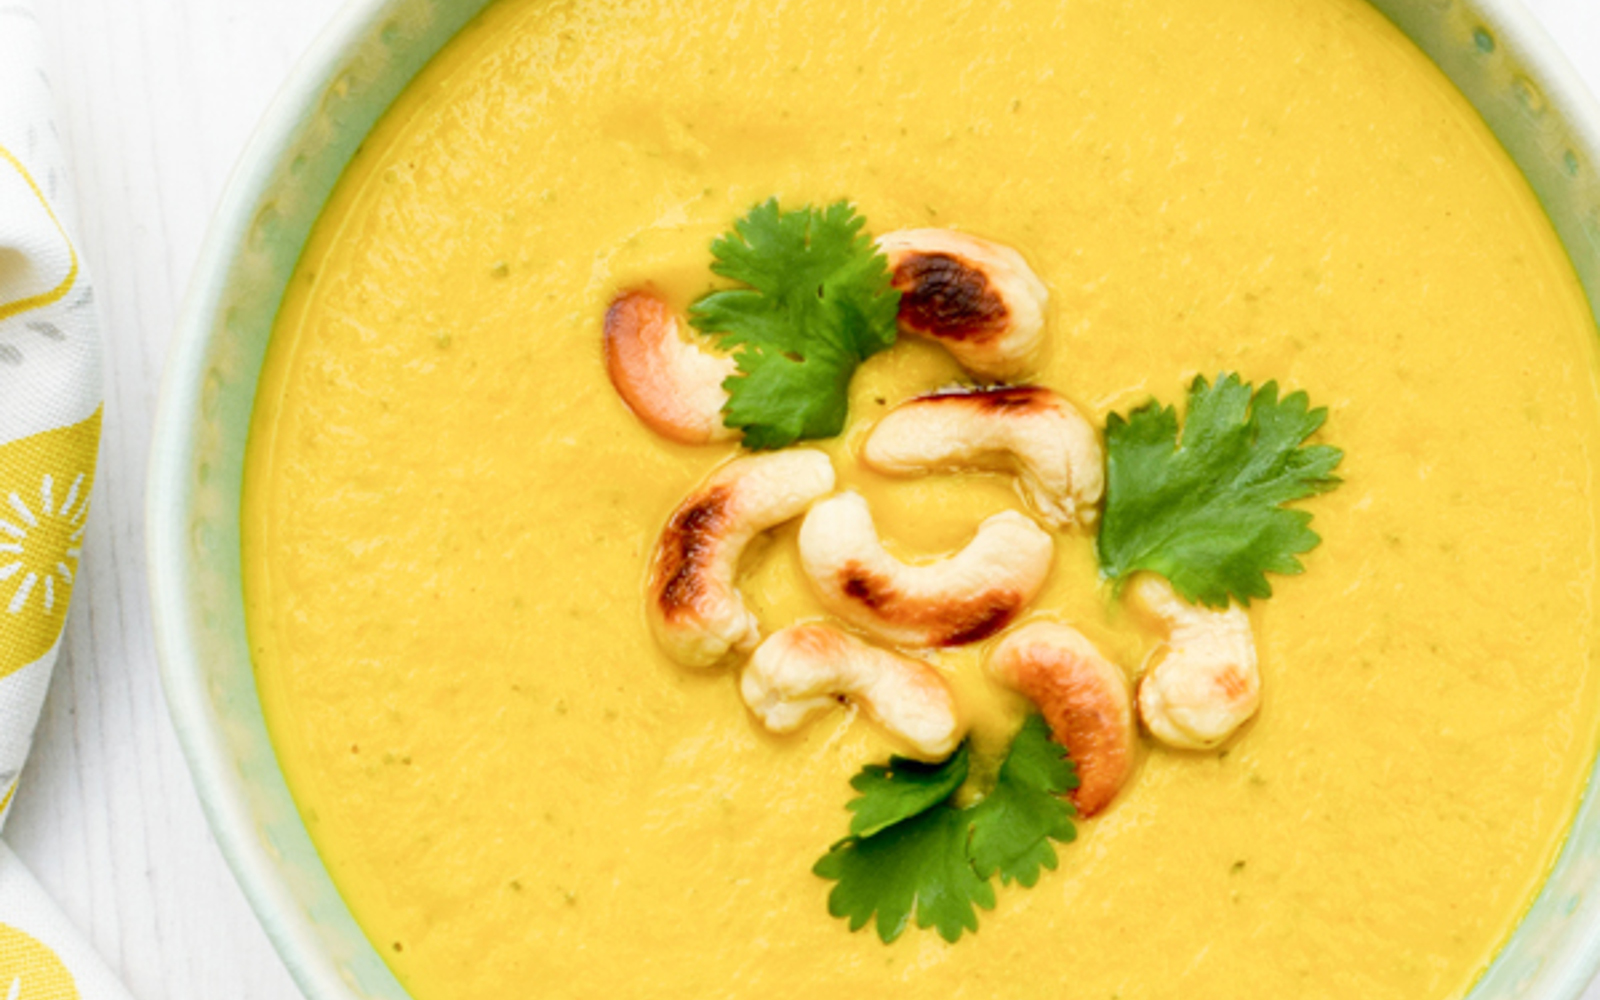 Carrot and Cashew Soup Vegan Gluten-Free with whole cashews and herbs to garnish